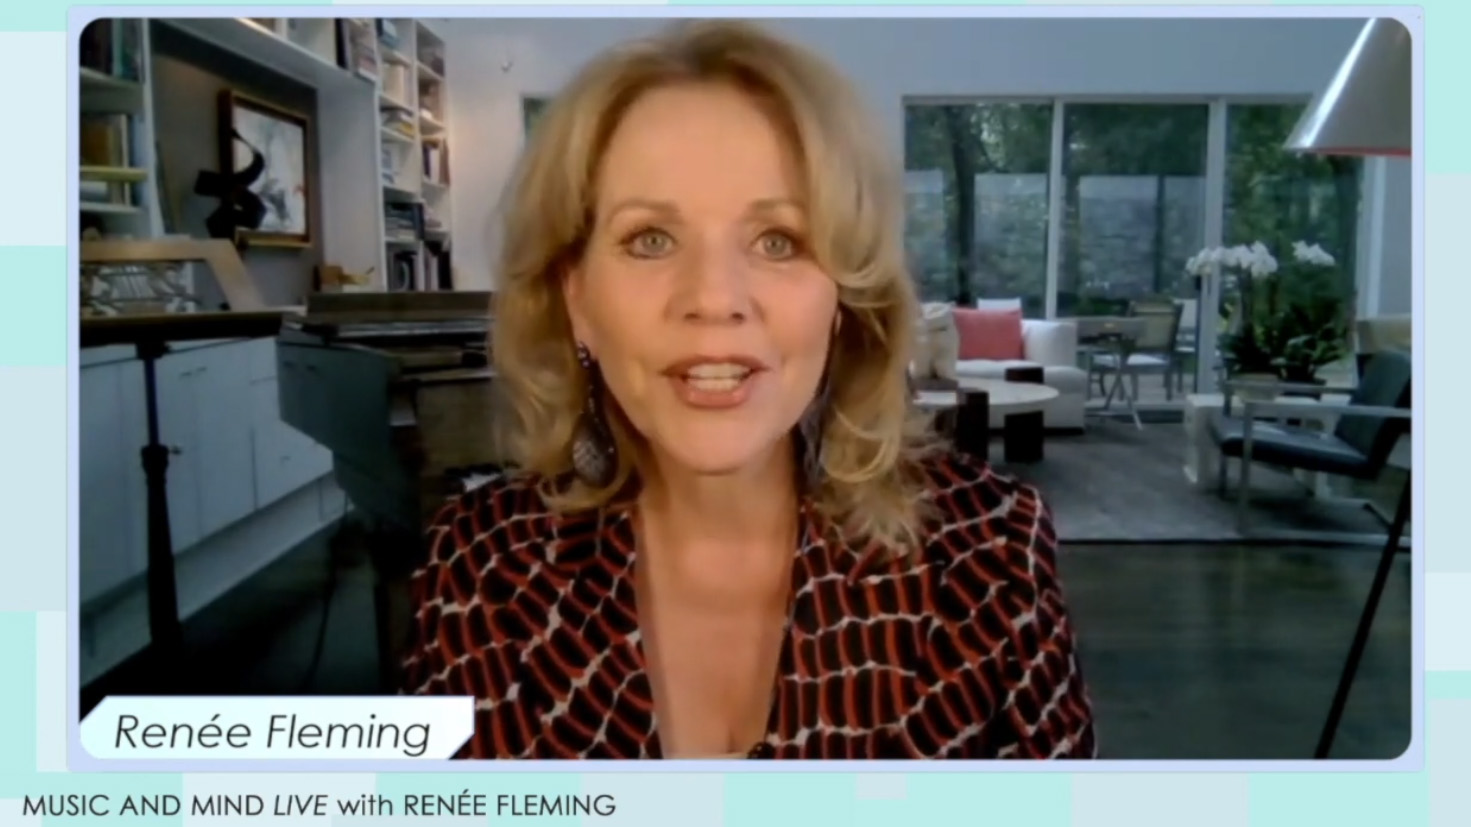 Music and Mind LIVE with Renée Fleming: NeuroArts Blueprint: A New Frontier